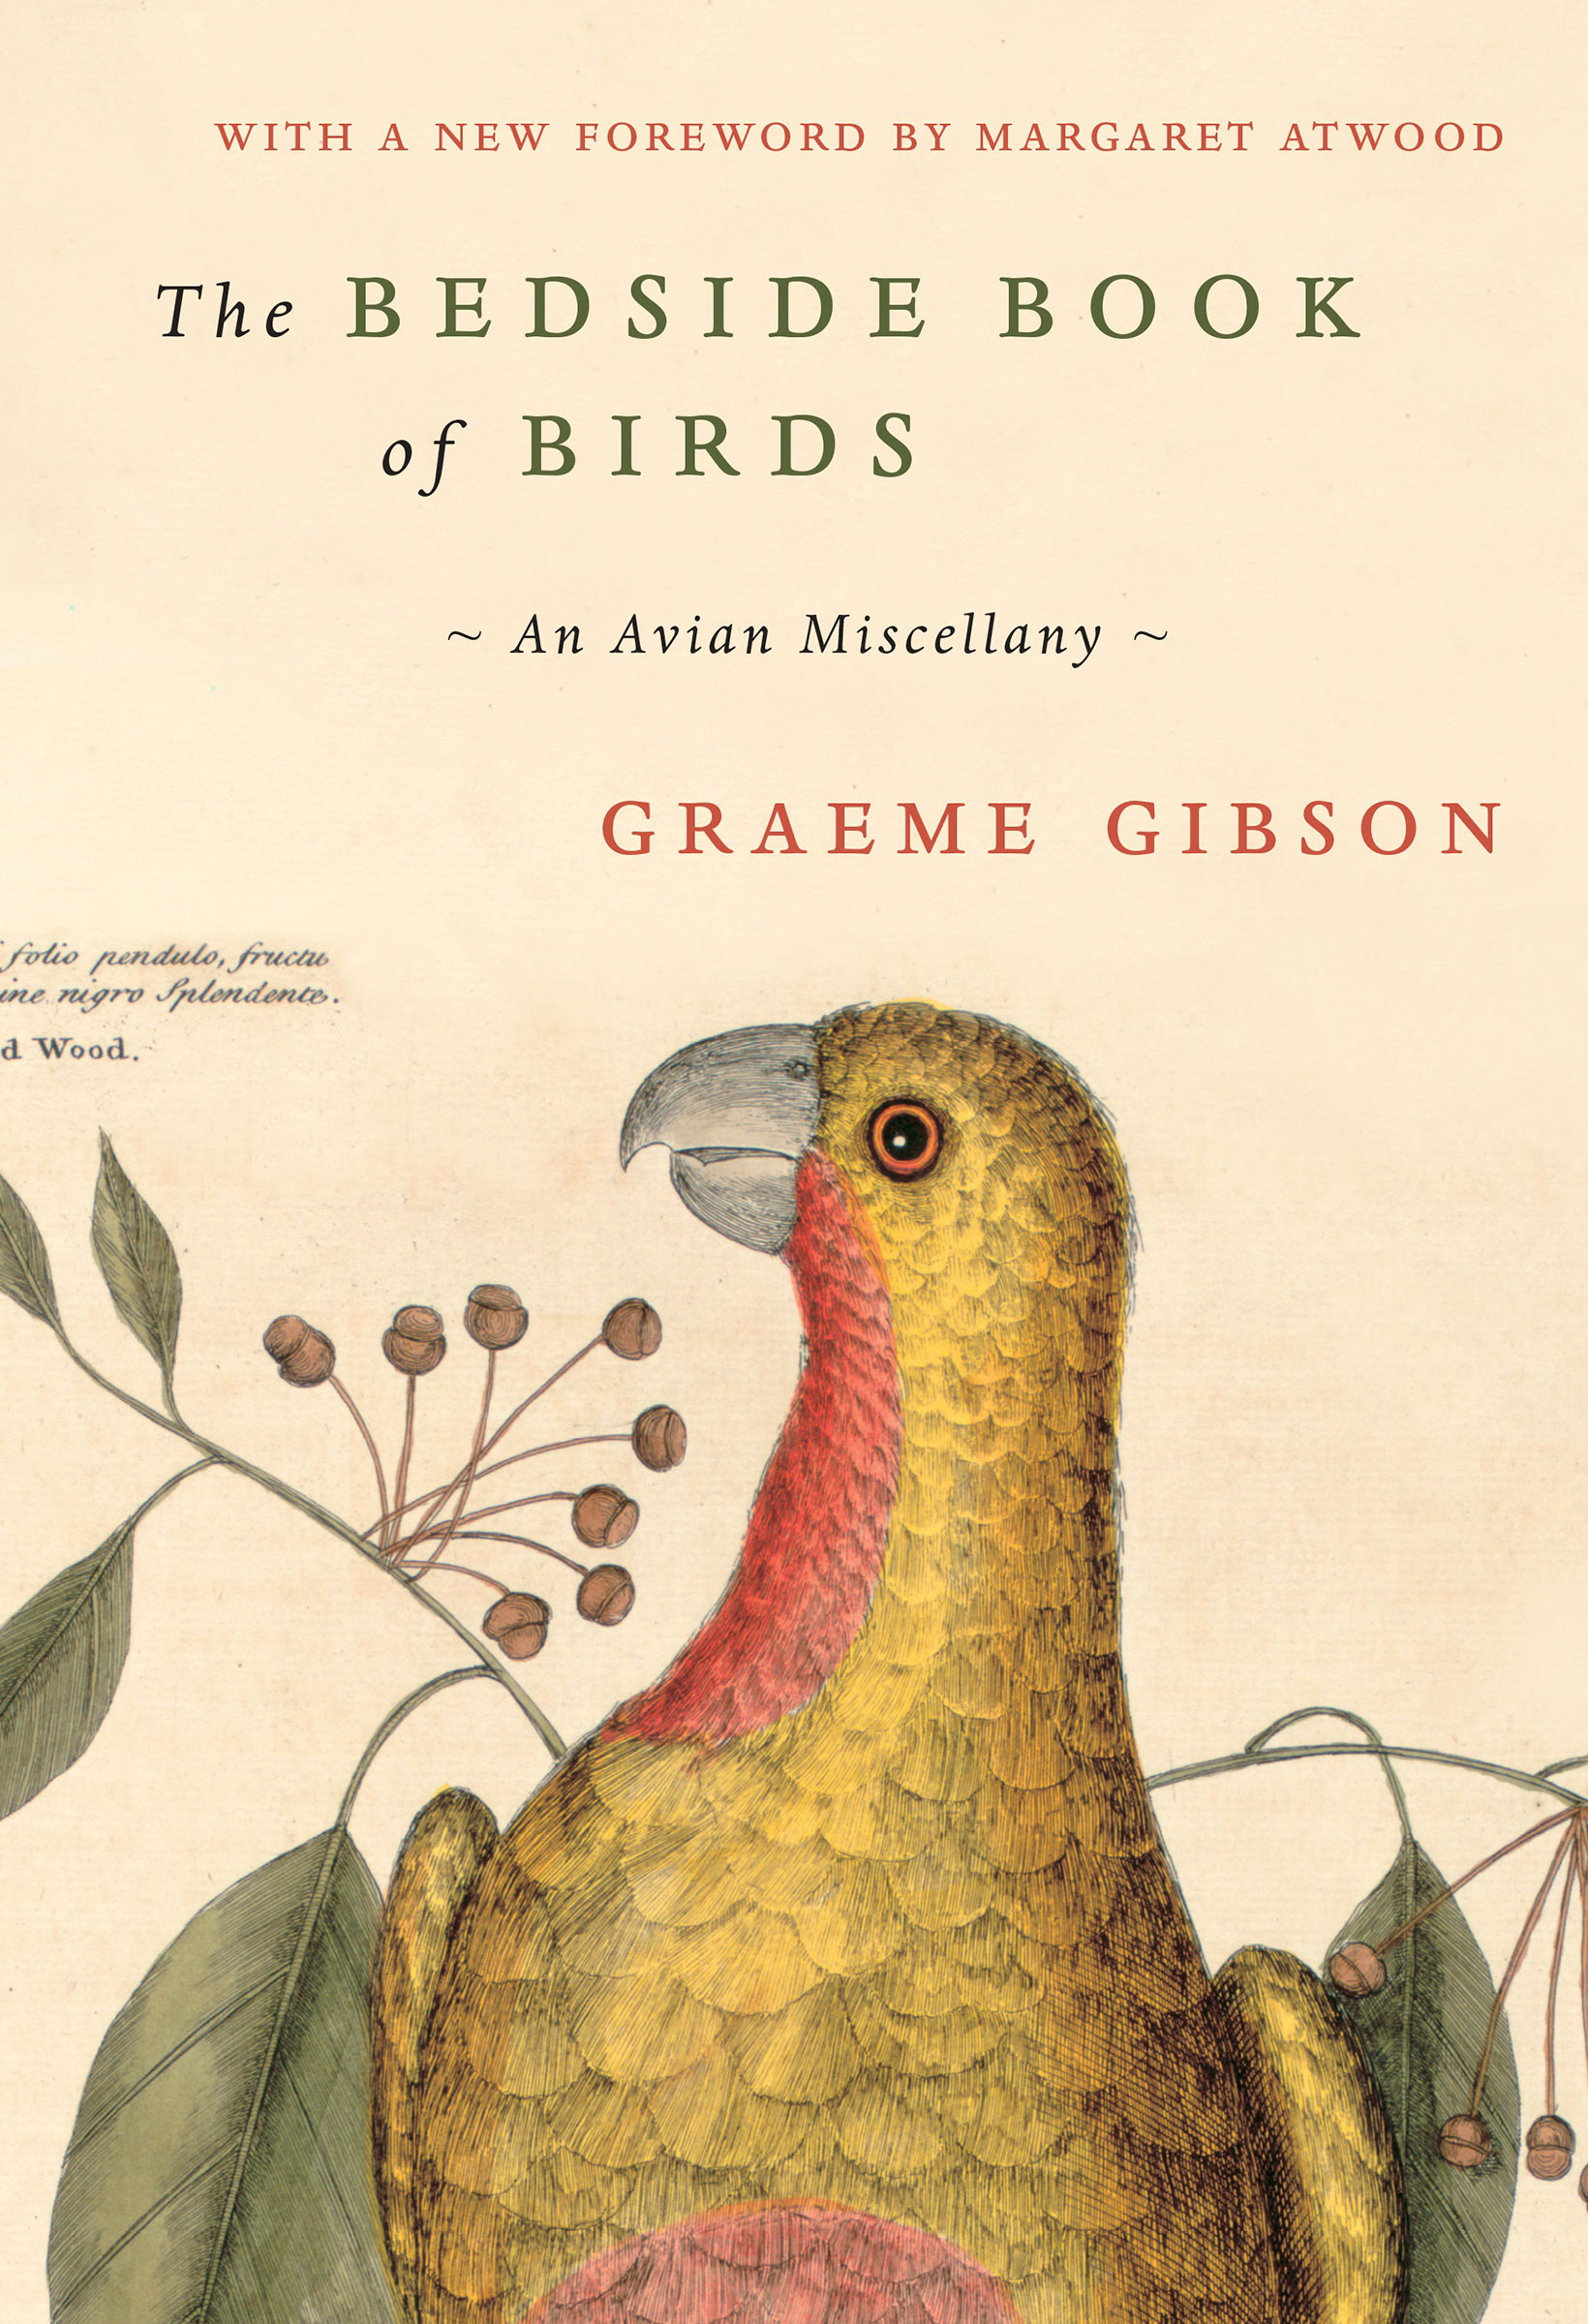 Cover of The Bedside Book of Birds by Graeme Gibson.